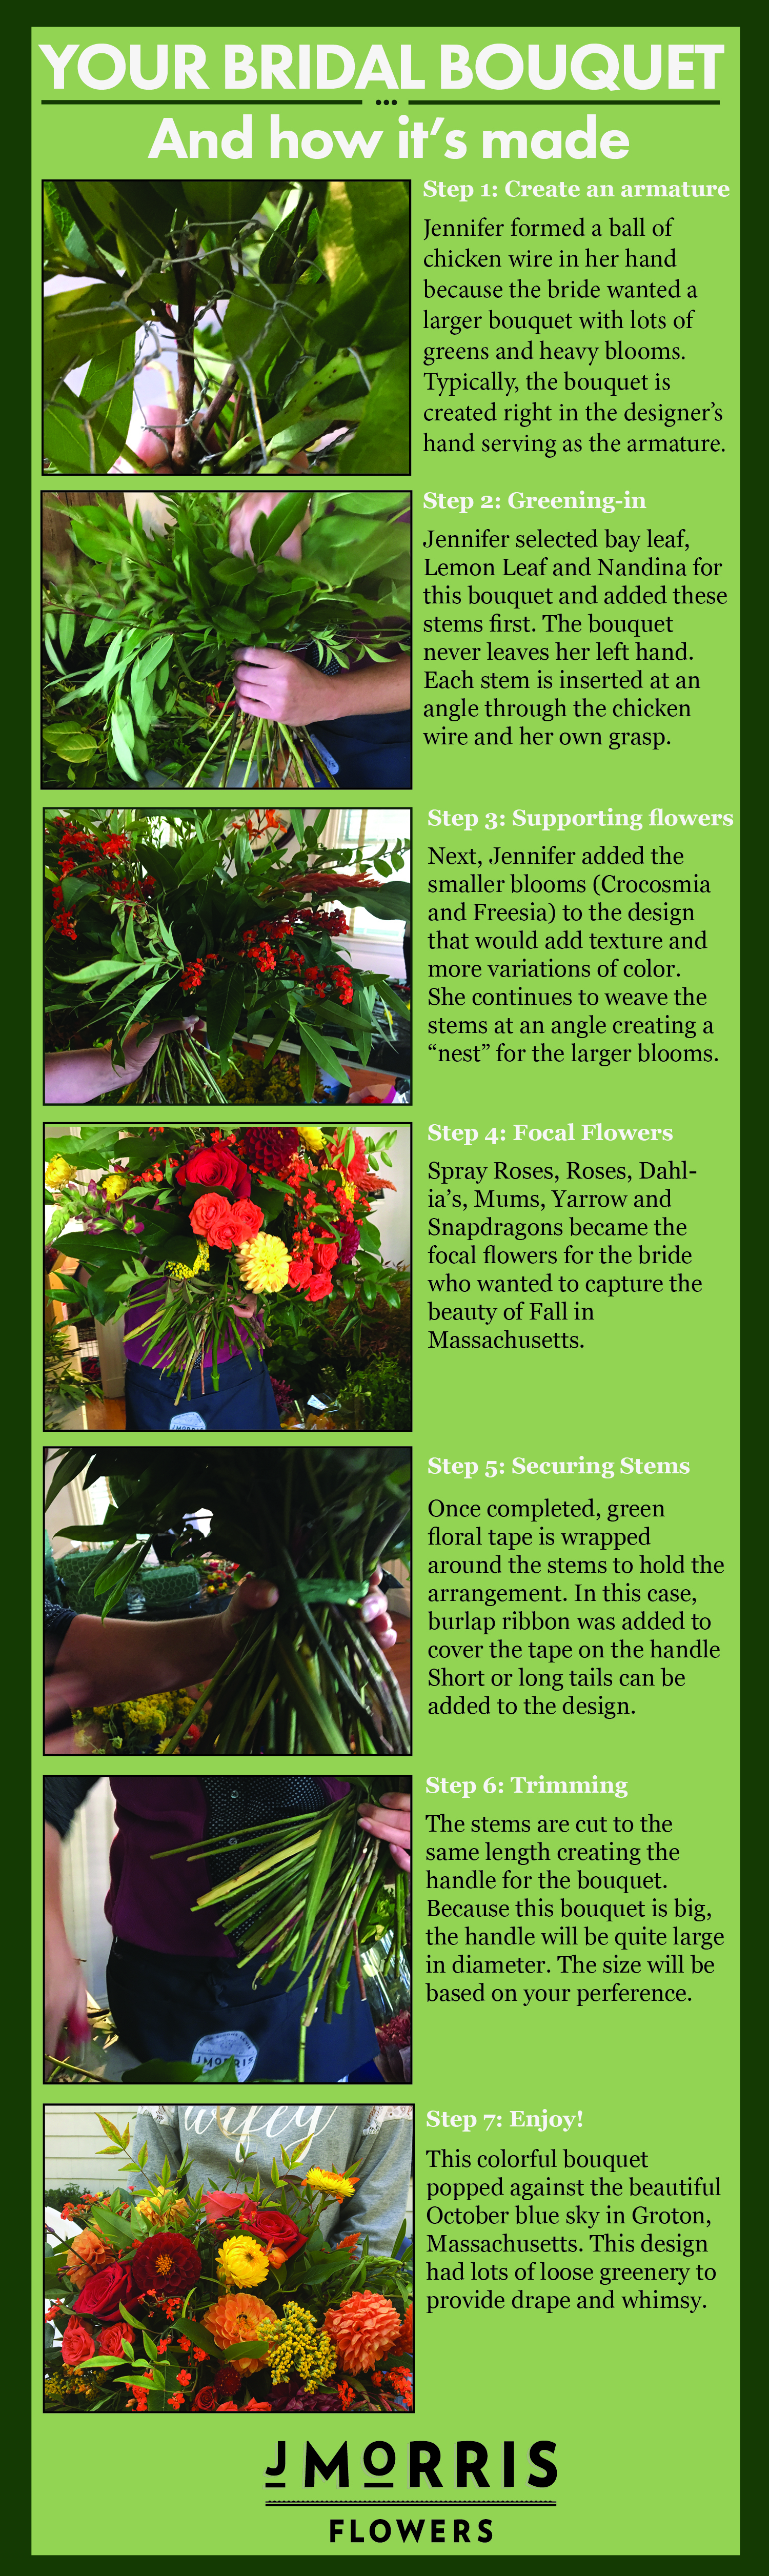 How-to-bridal-bouquet.jpg